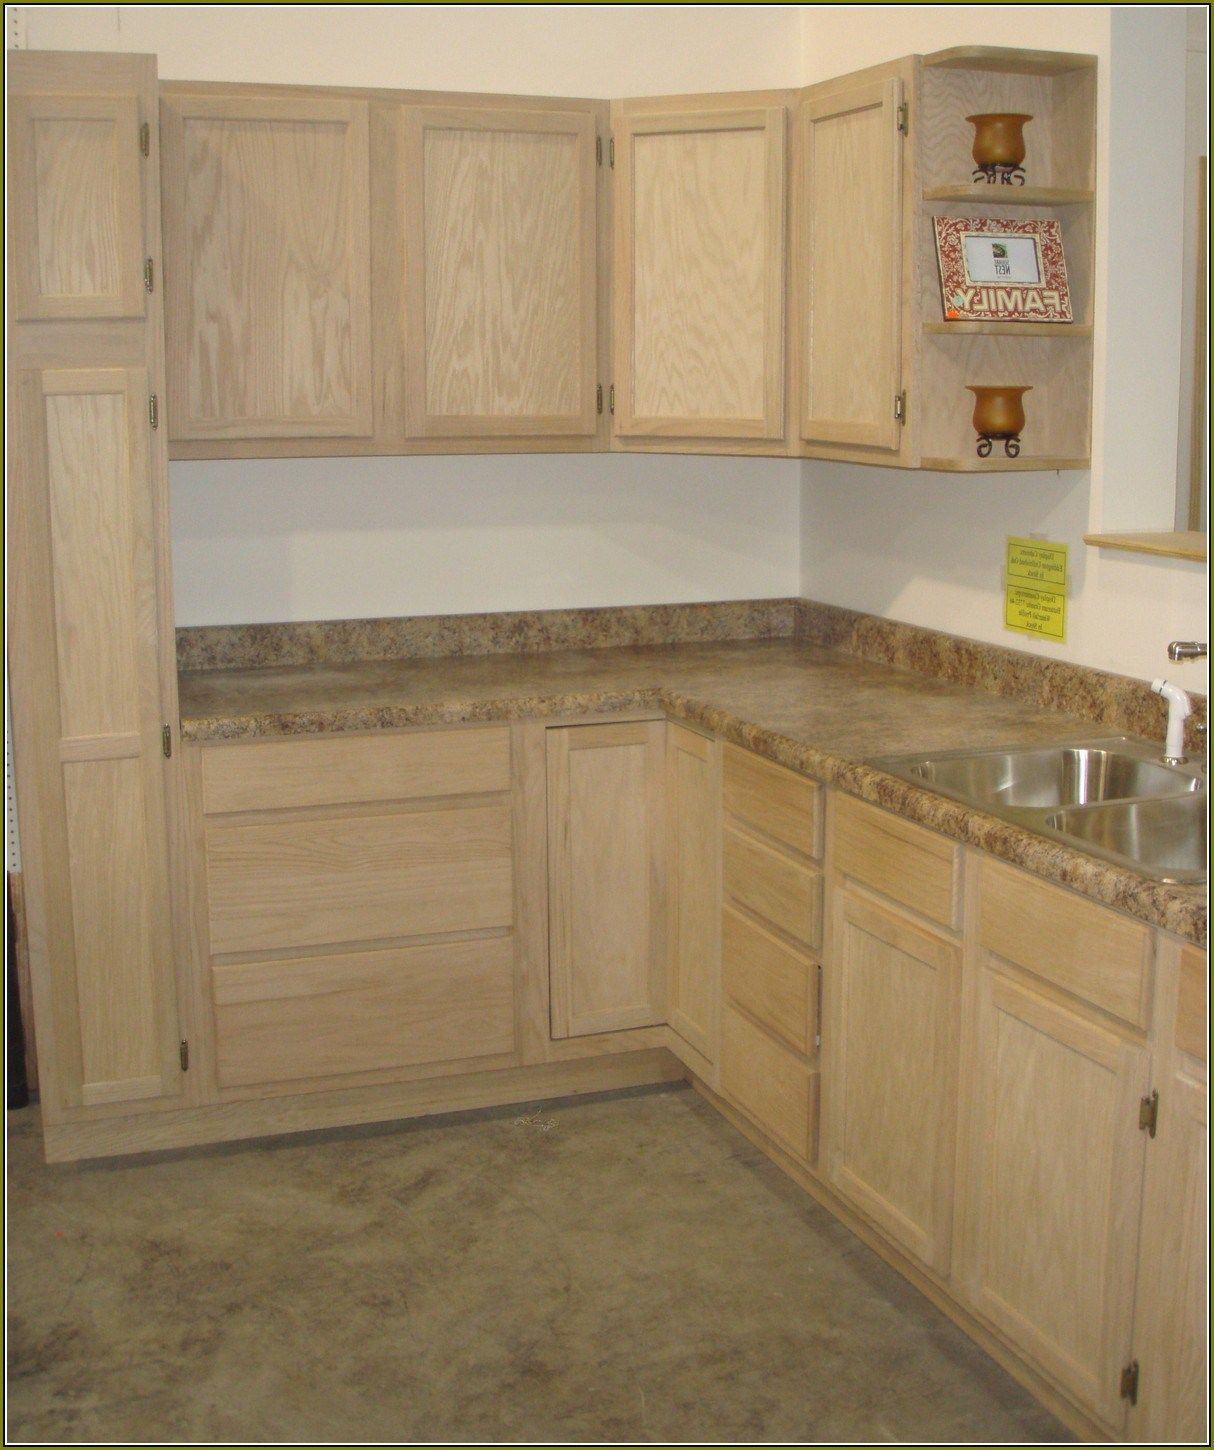 Good Home Improvements Refference Unfinished Pine Cabinets Home Depot Kitchen  Cabinets Assemble Home Depot Lowes Kitchen Cabinets Nice Look